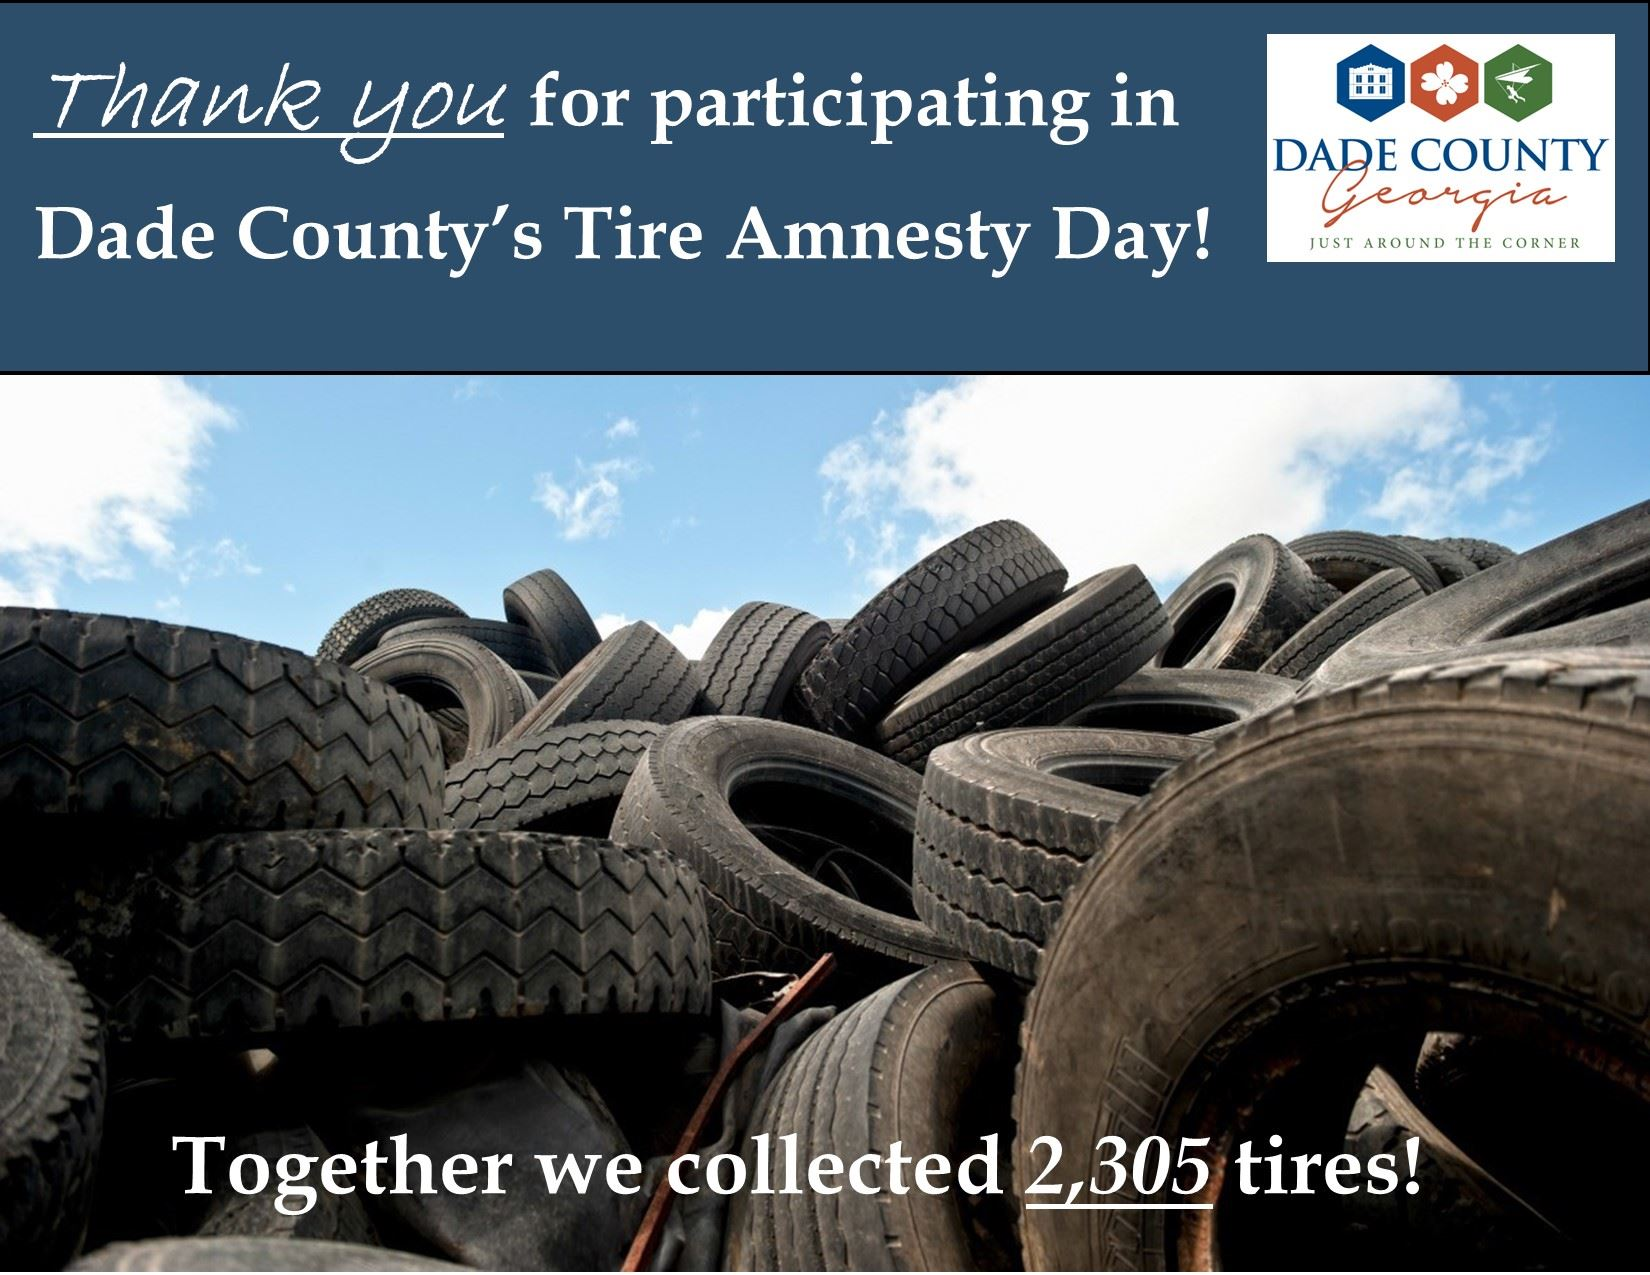 Thank you Tire Amnesty Day 2,305 tires!